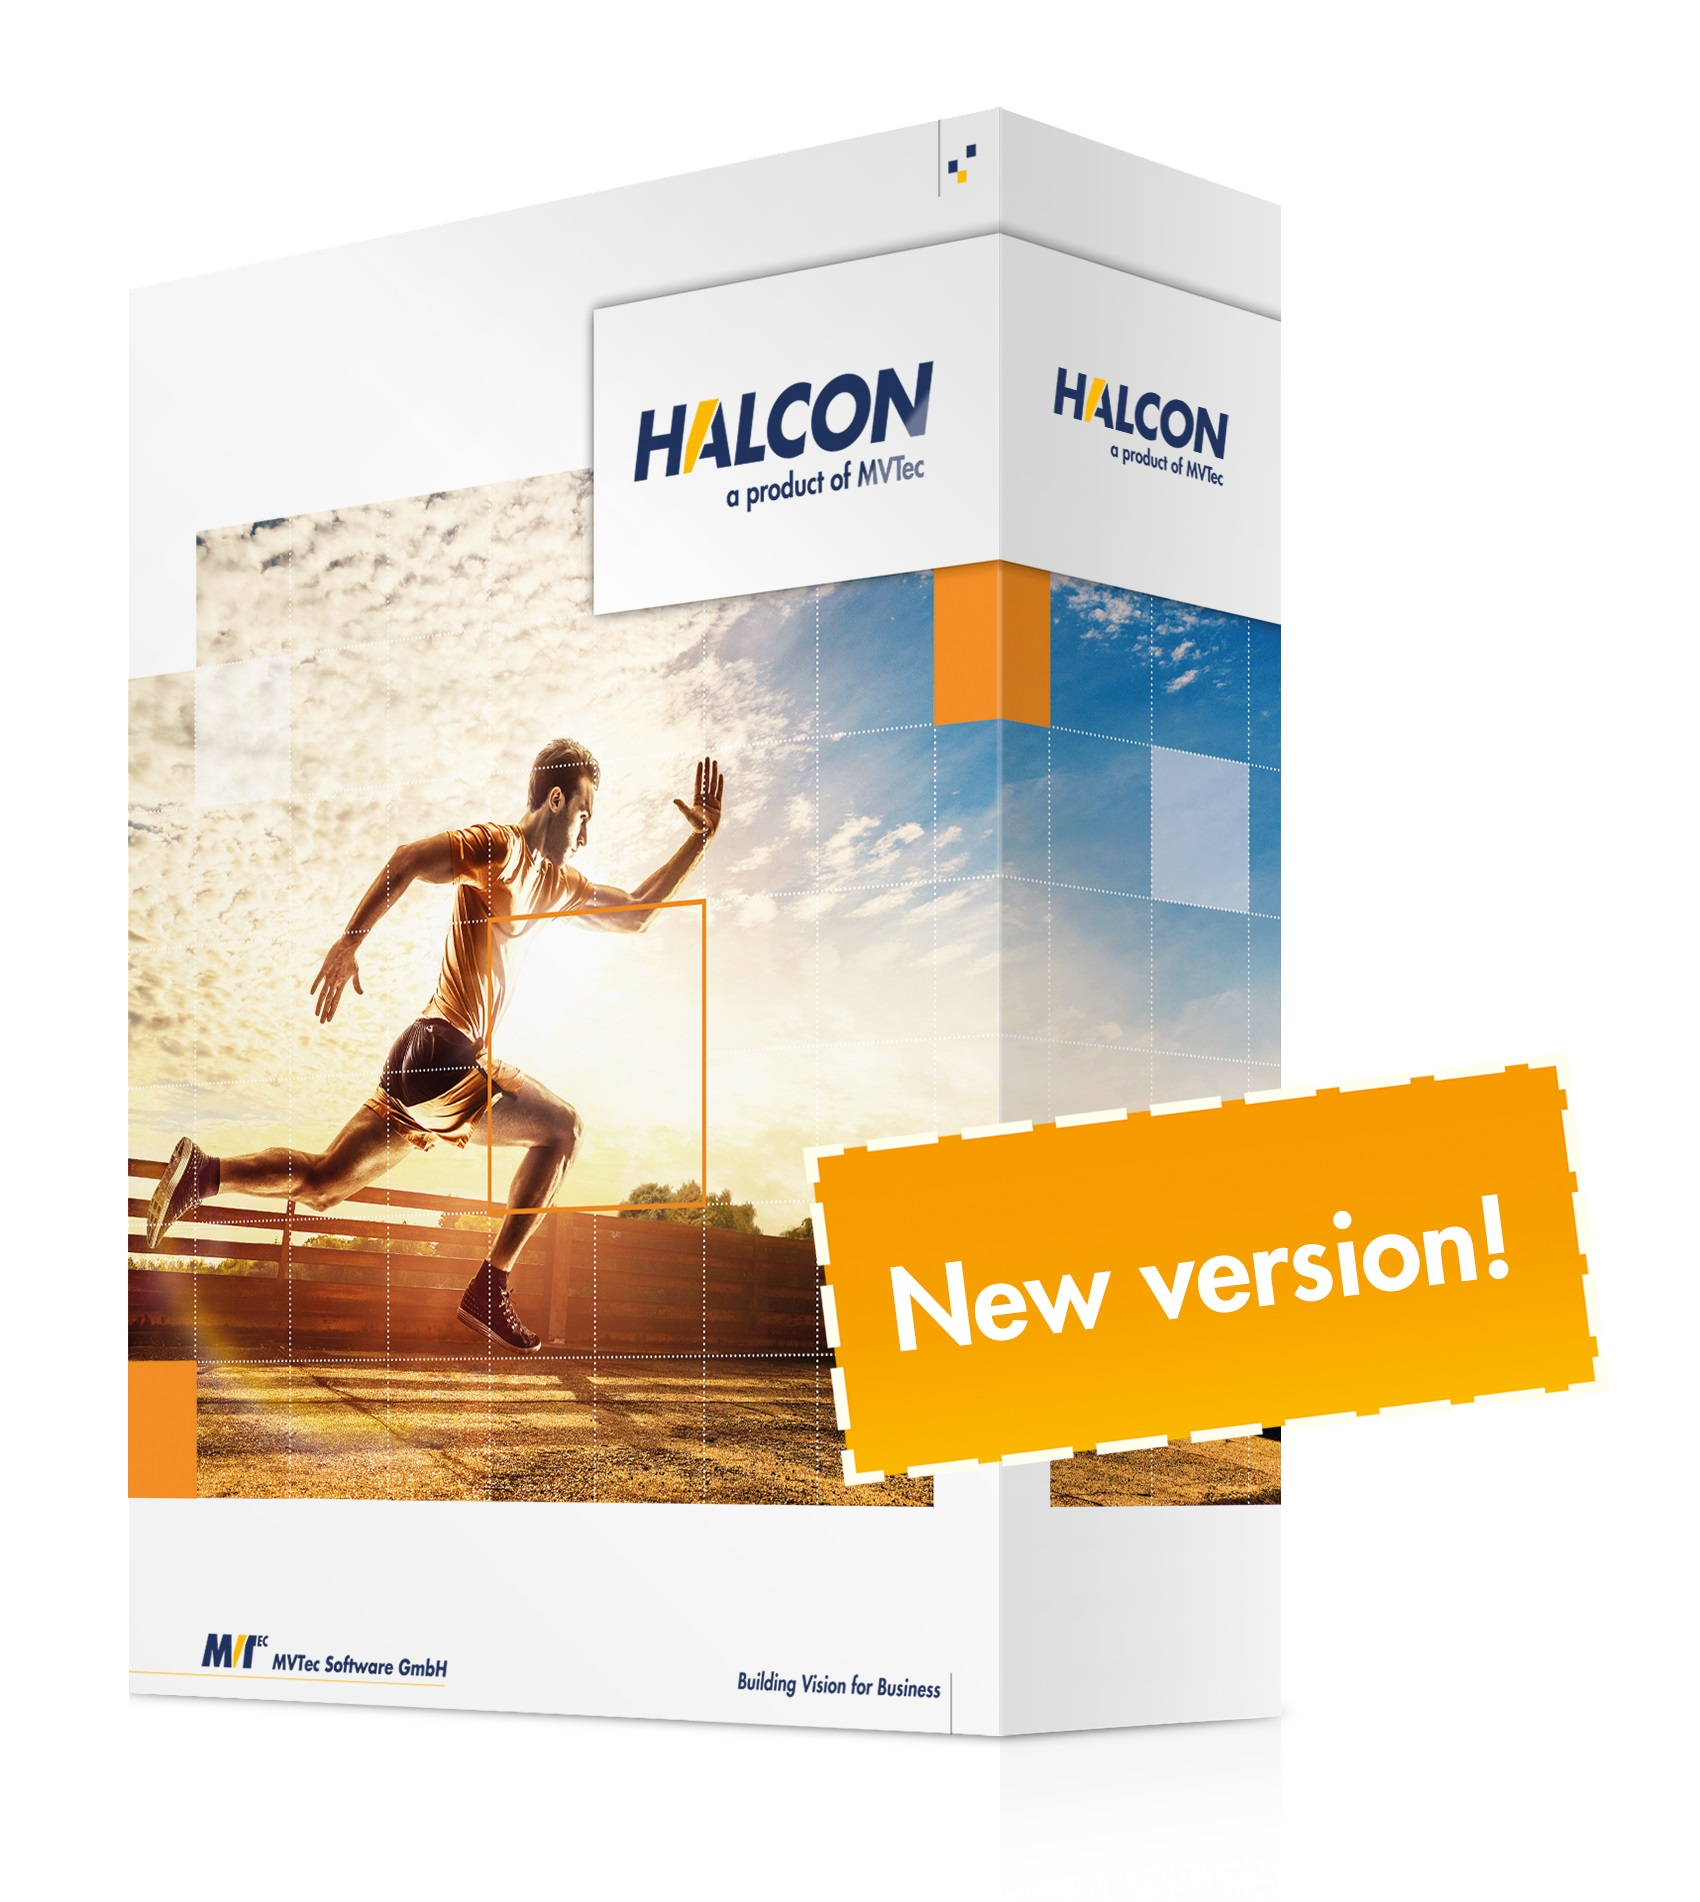 HALCON 18.05 will be available on May 22.